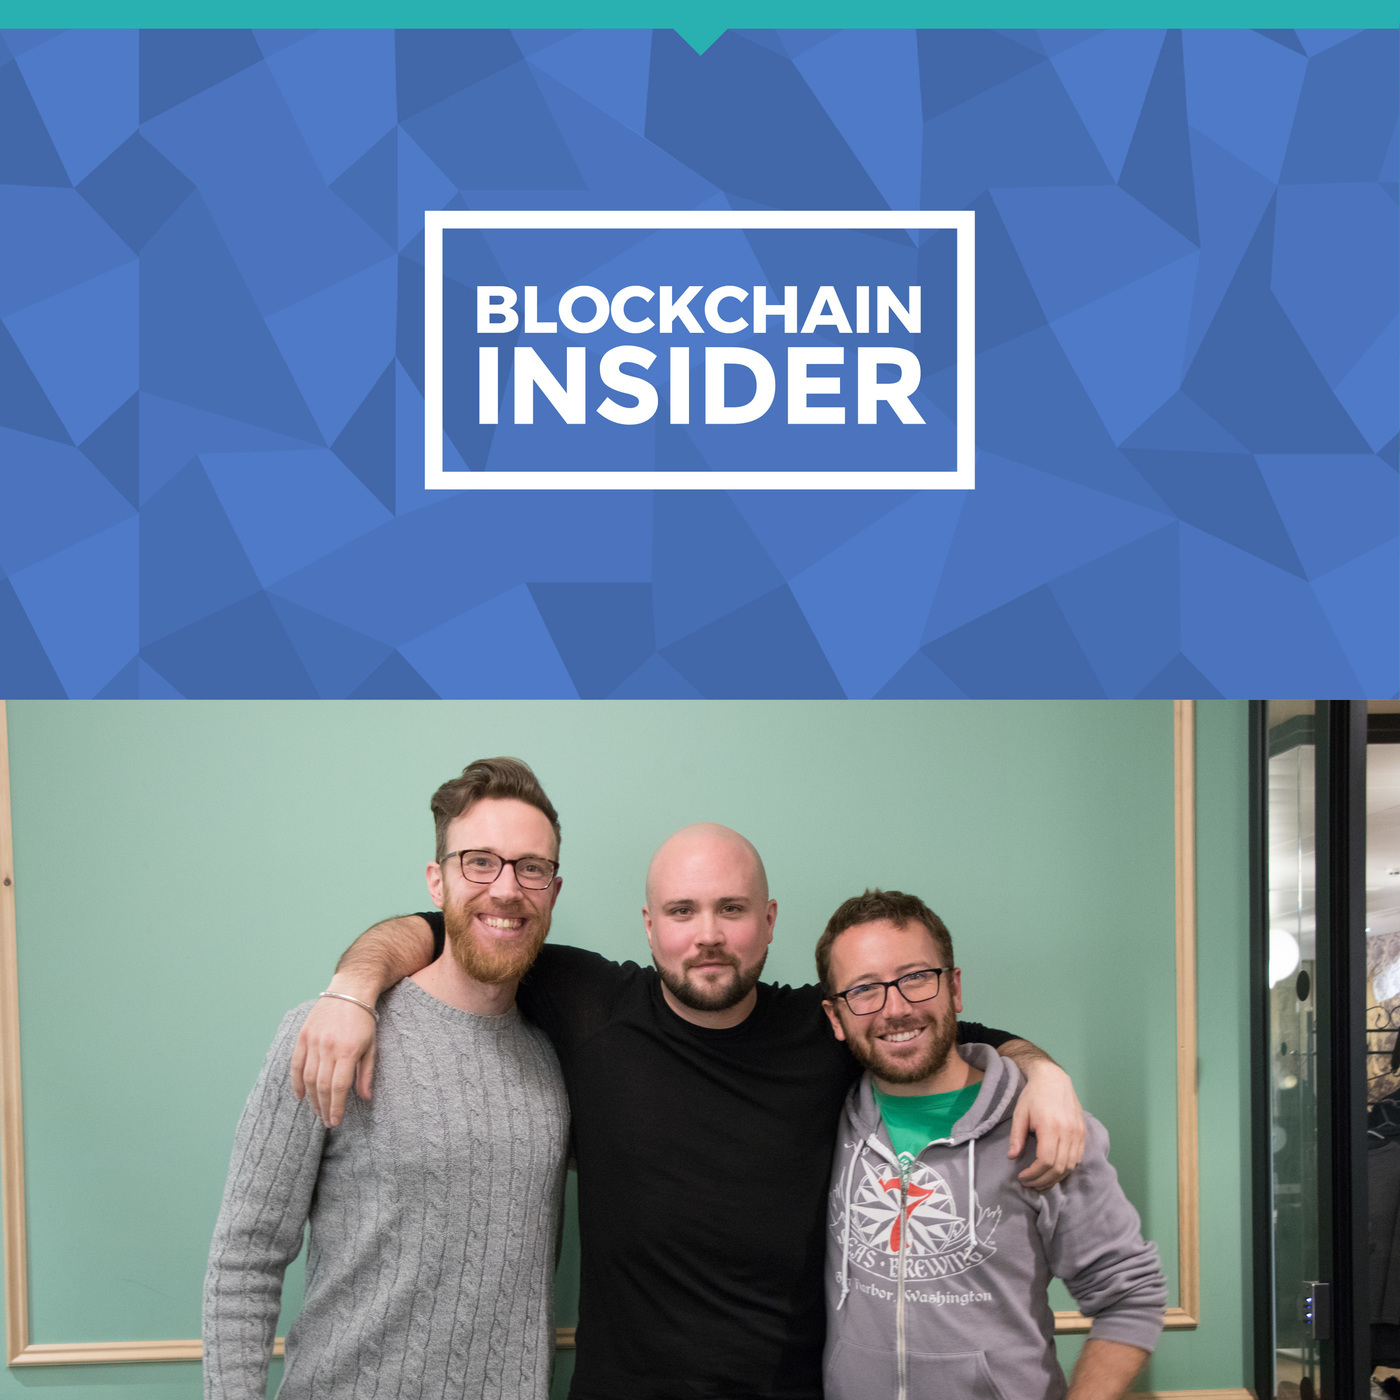 Ep. 24. CBOE futures, Bitcoin mining energy usage & investing responsibly